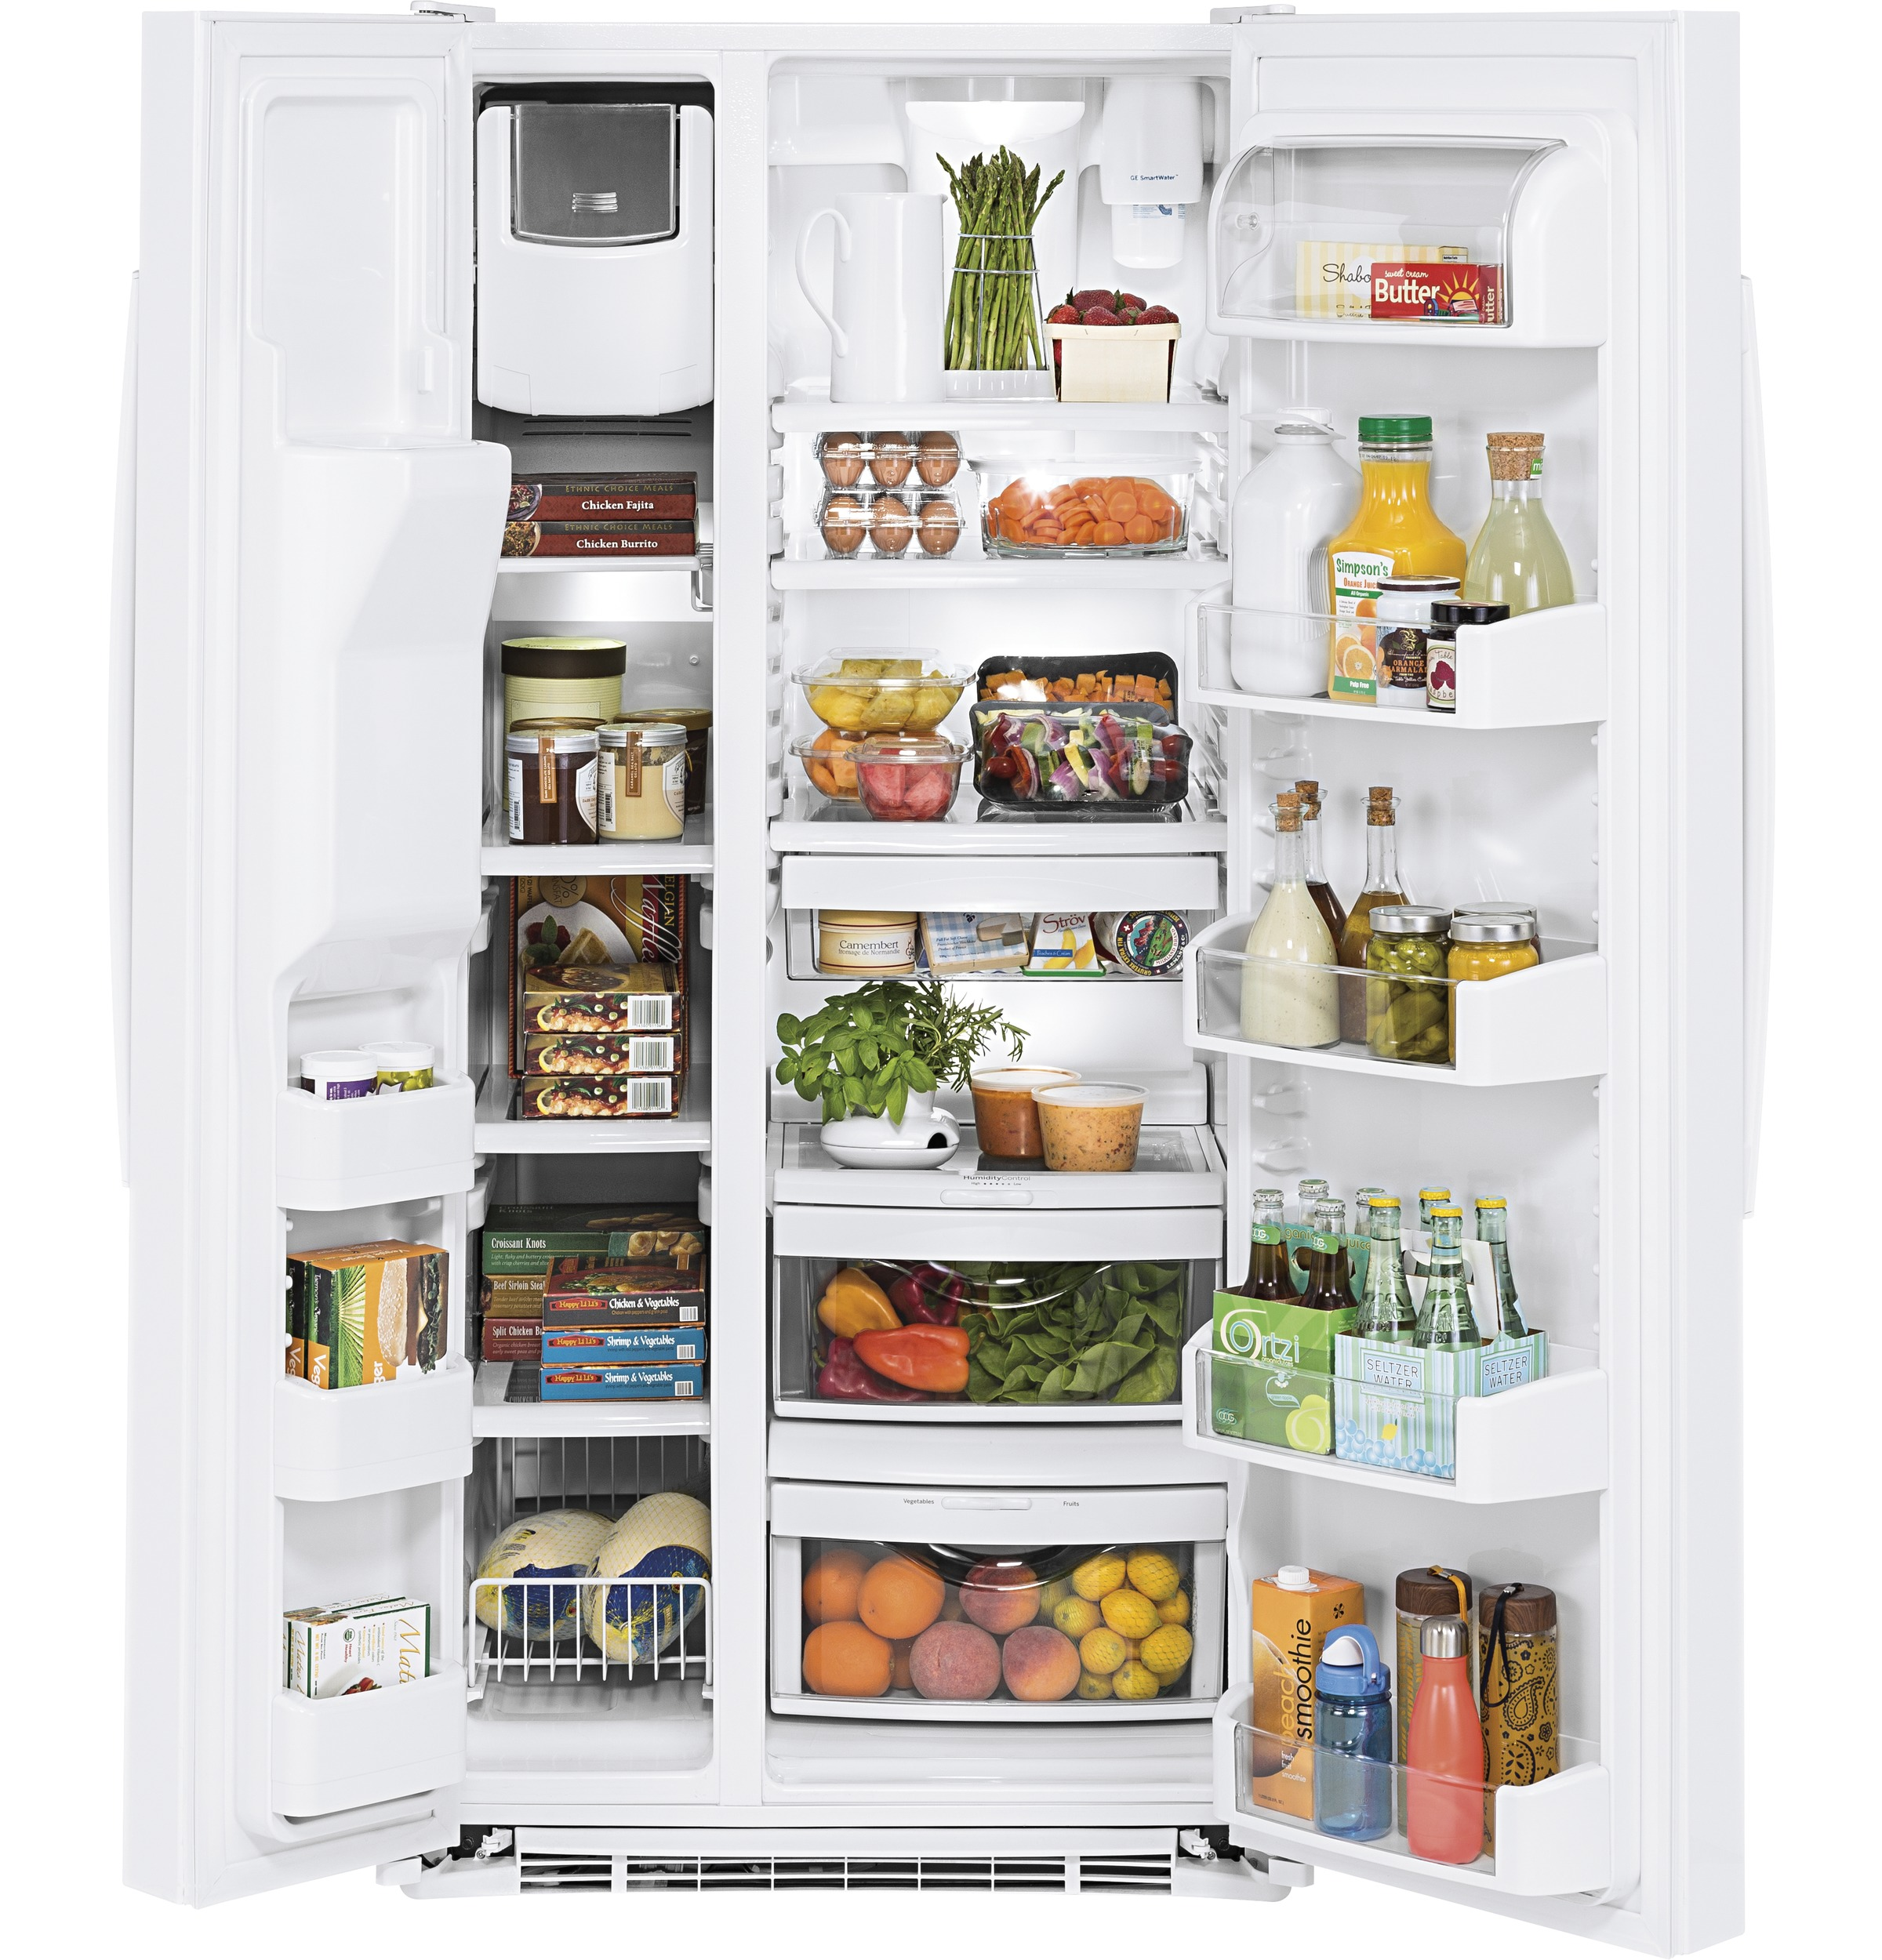 Model: GSS23HGHWW | GE GE® 23.2 Cu. Ft. Side-By-Side Refrigerator